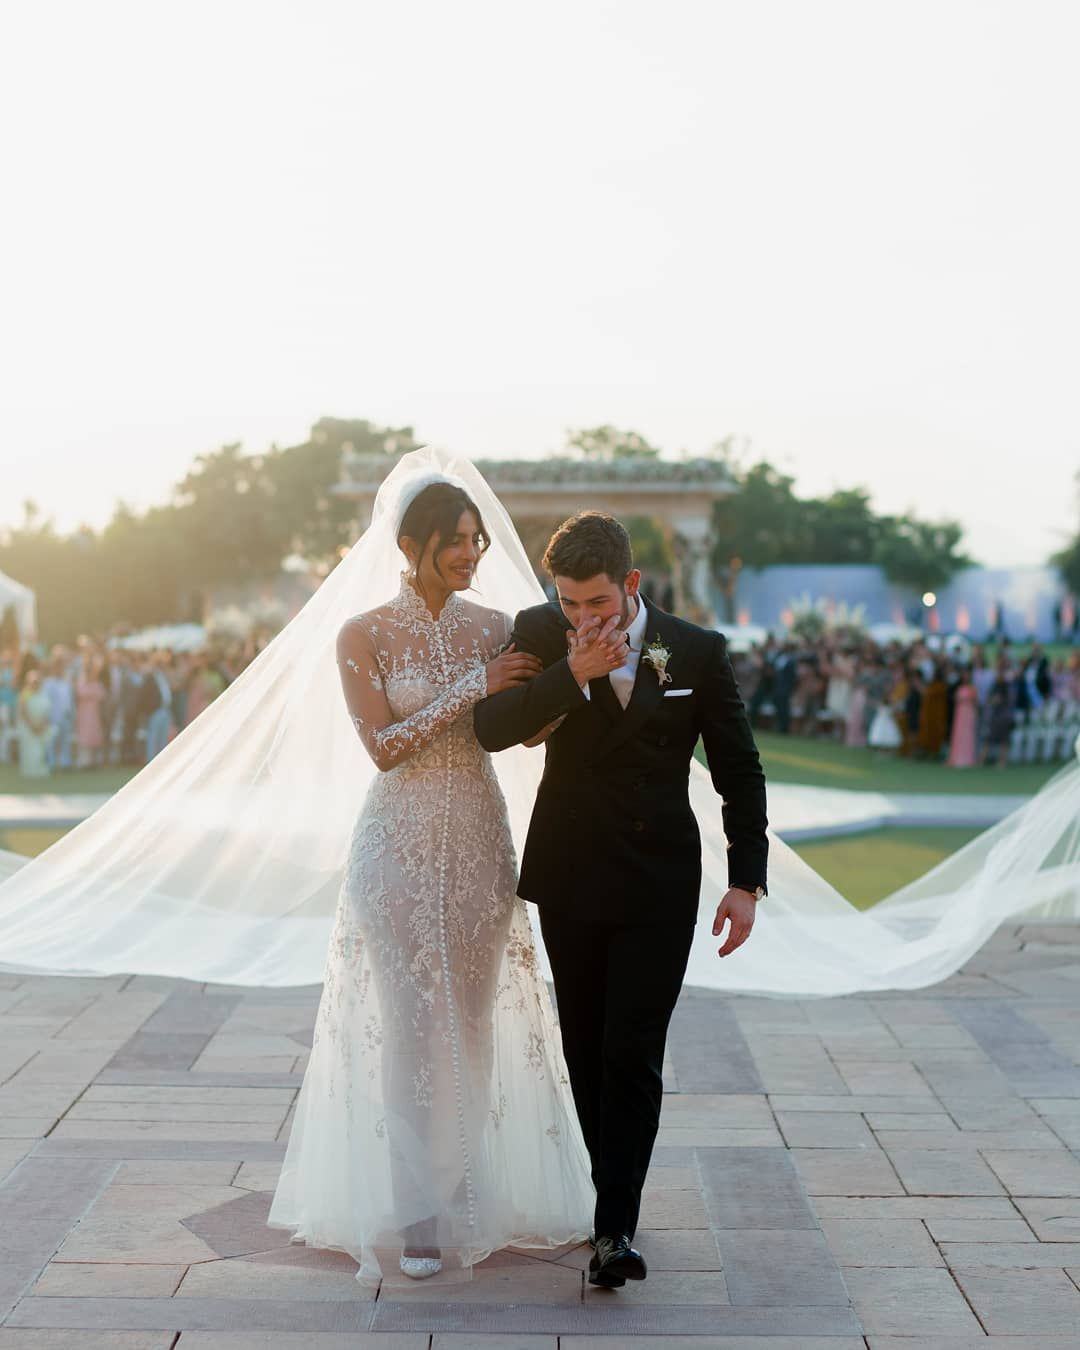 Priyanka Chopra And Nick Jonas Official Wedding Pics Are Here And Her Dresses Are Gorgeous Priyanka Chopra Wedding Western Wedding Dresses Wedding Dresses